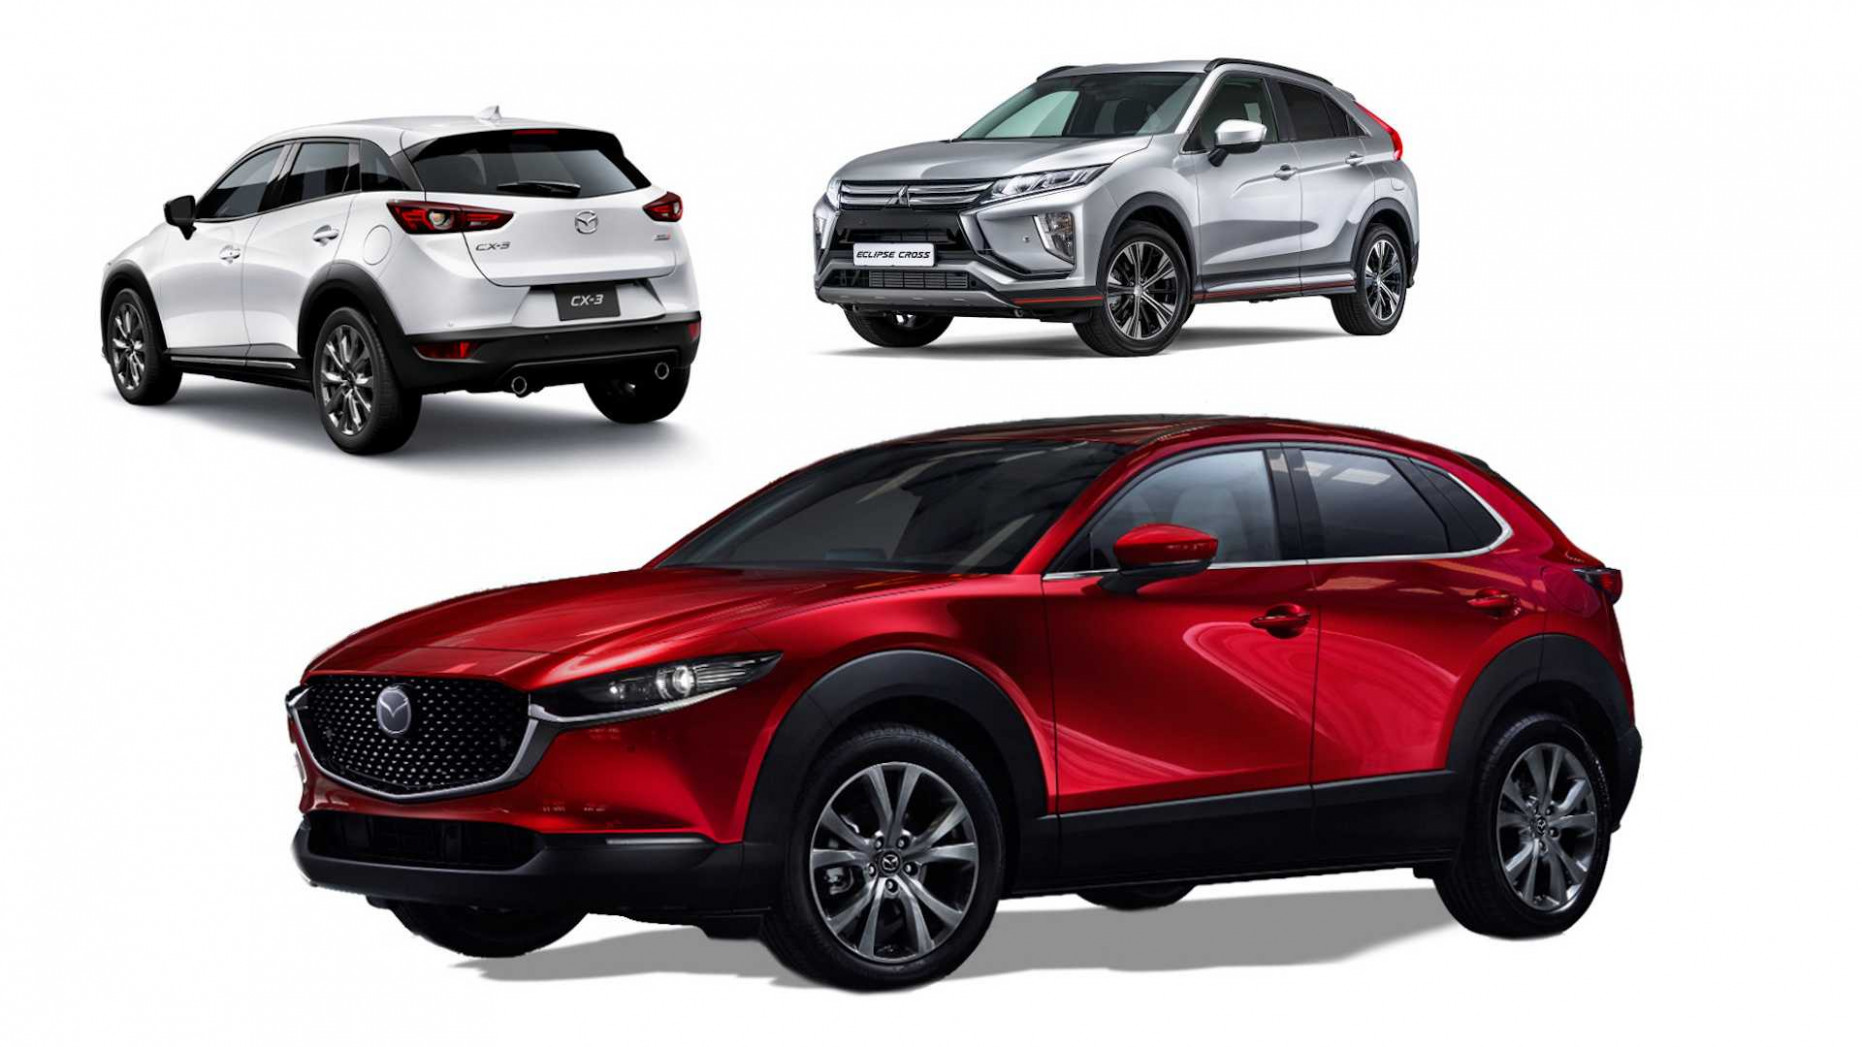 7 Mazda CX-7 Vs The Competition: What's The Difference?